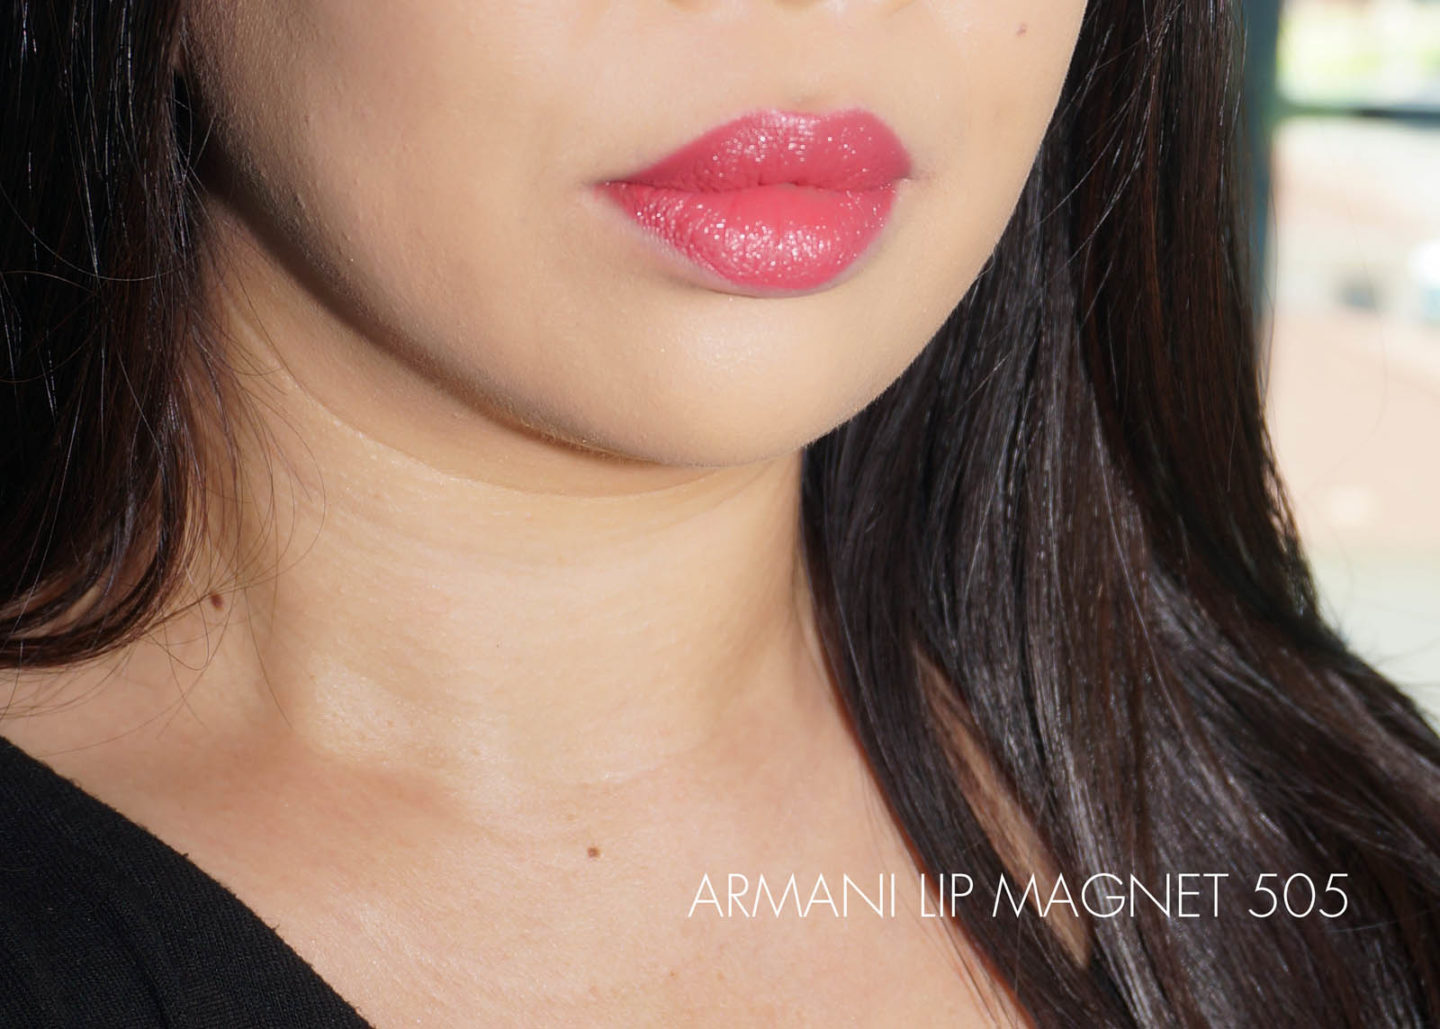 Armani Lip Magnet Swatch 505